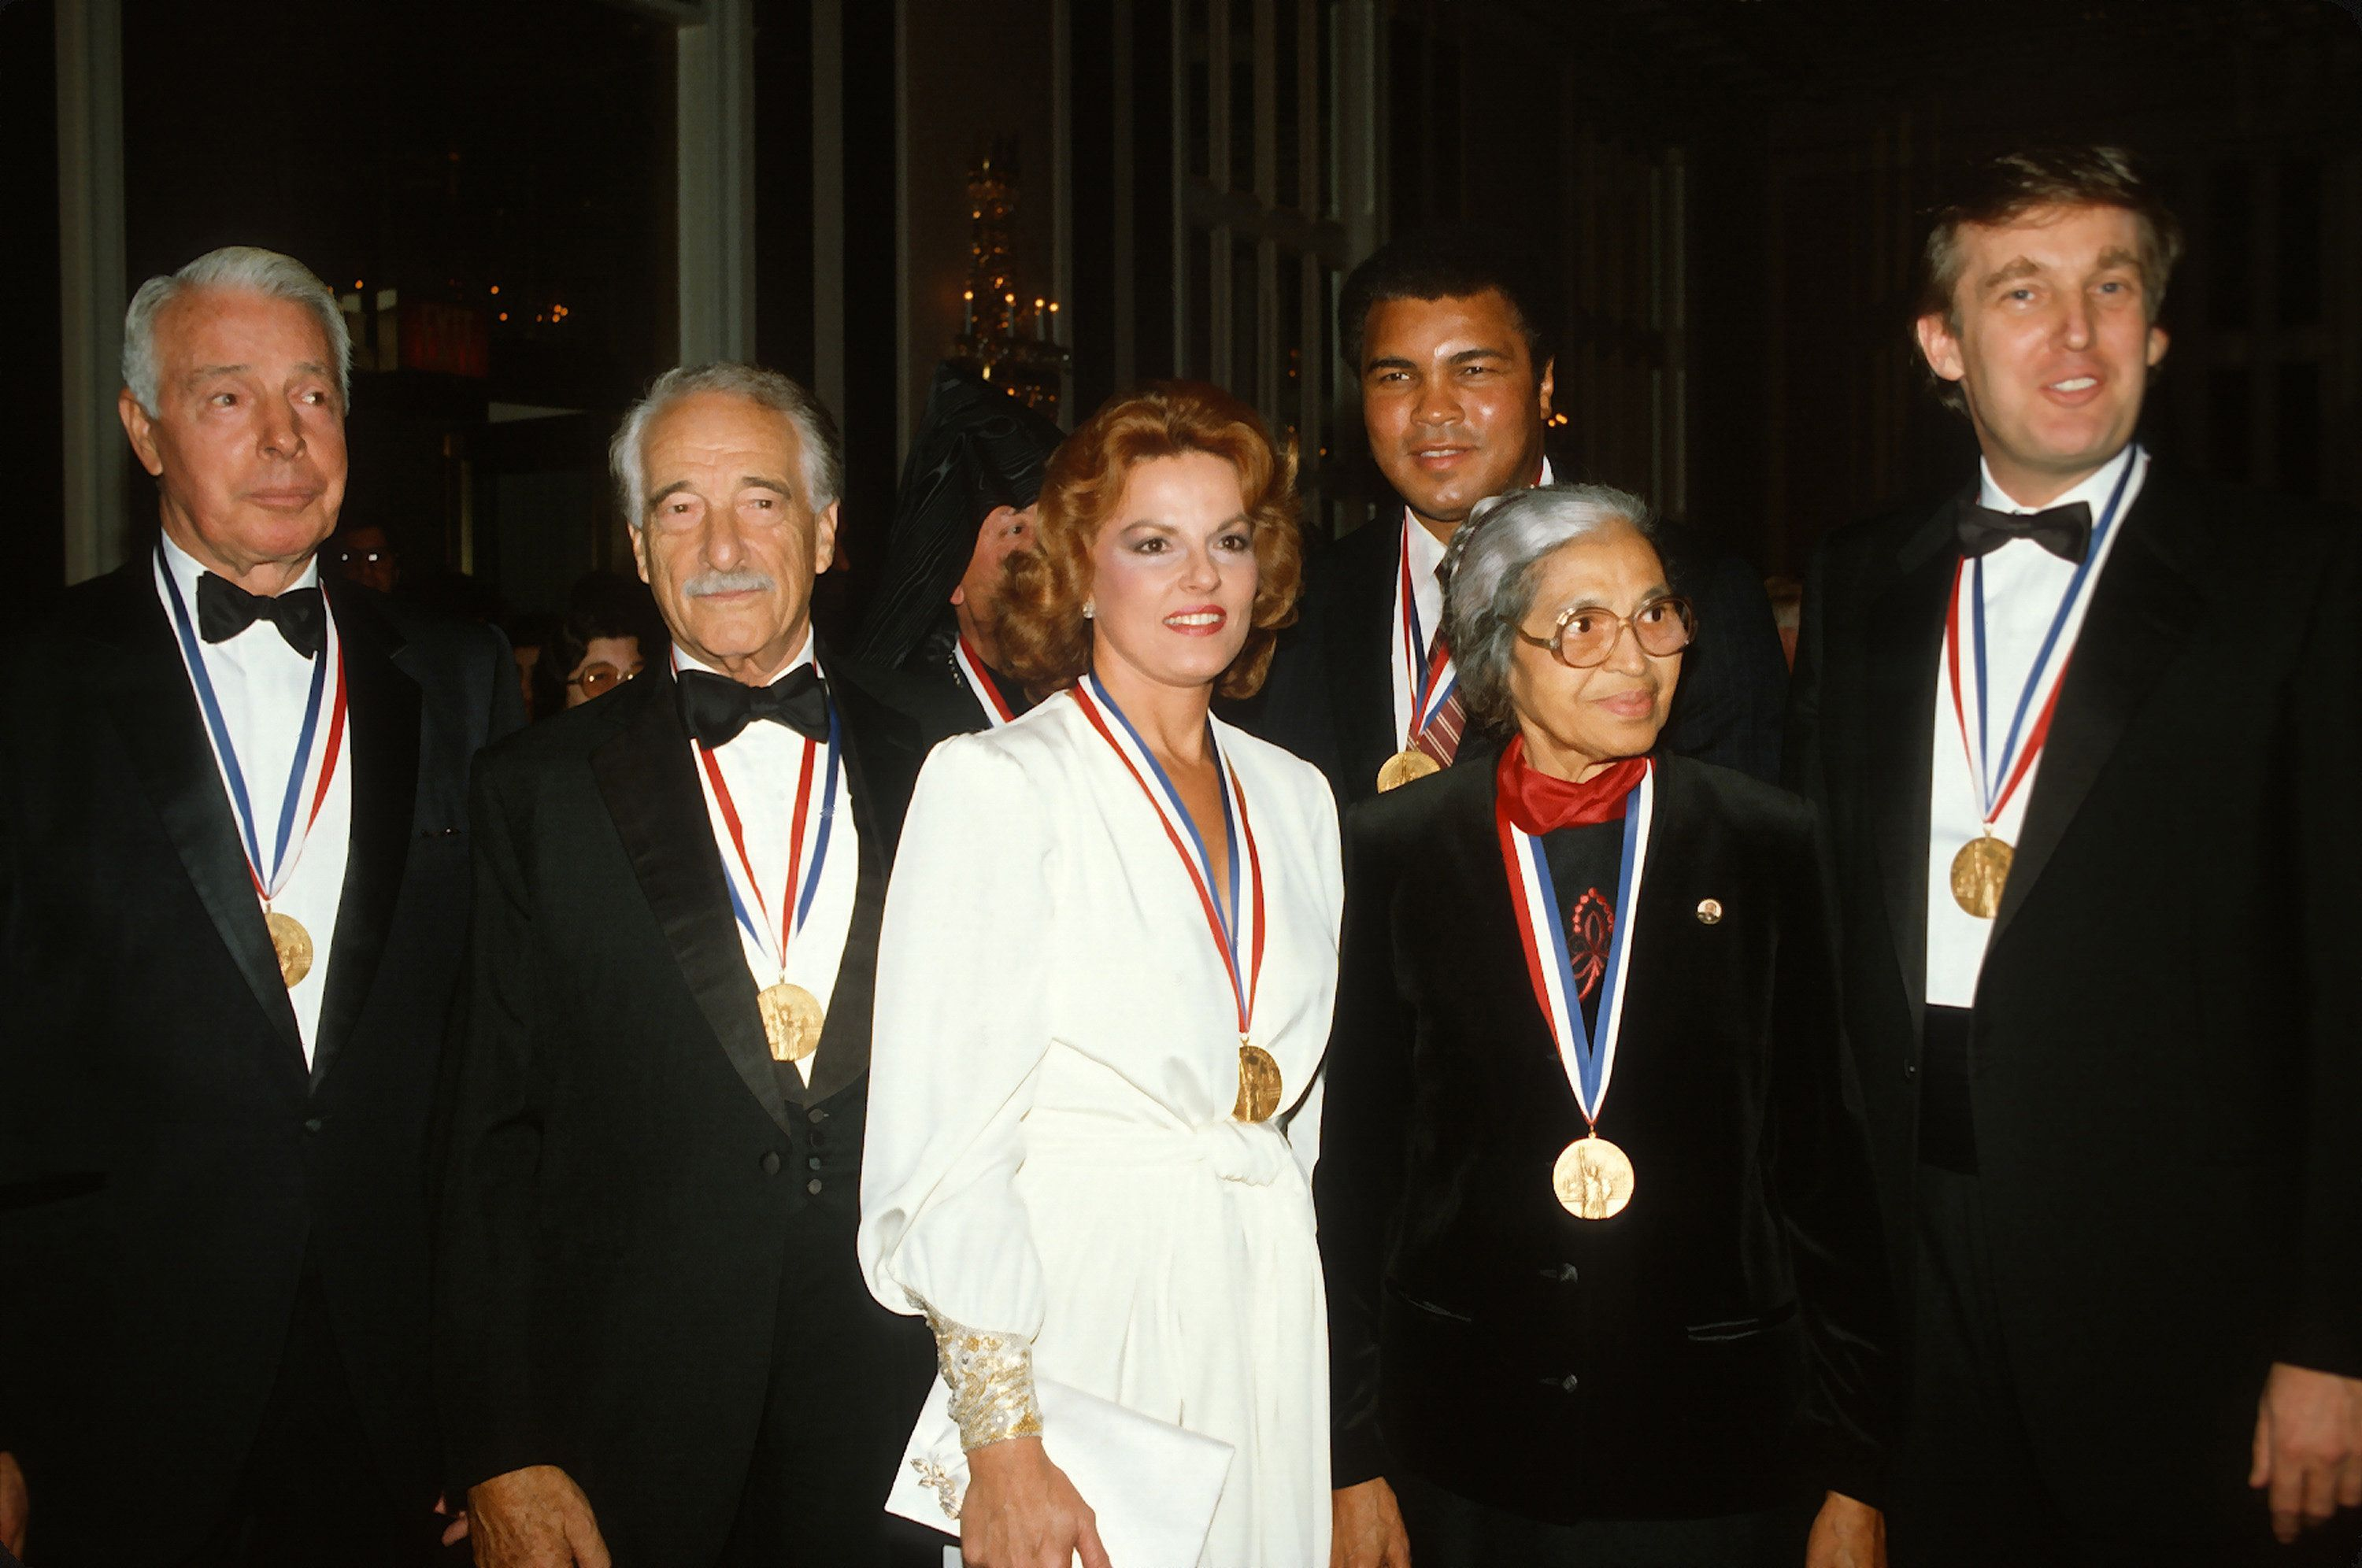 (Left to Right) Joe DiMaggio, Victor Borge, Anita Bryant, Muhammad Ali, Rosa Parks, and Donald Trump pose for a photograph af